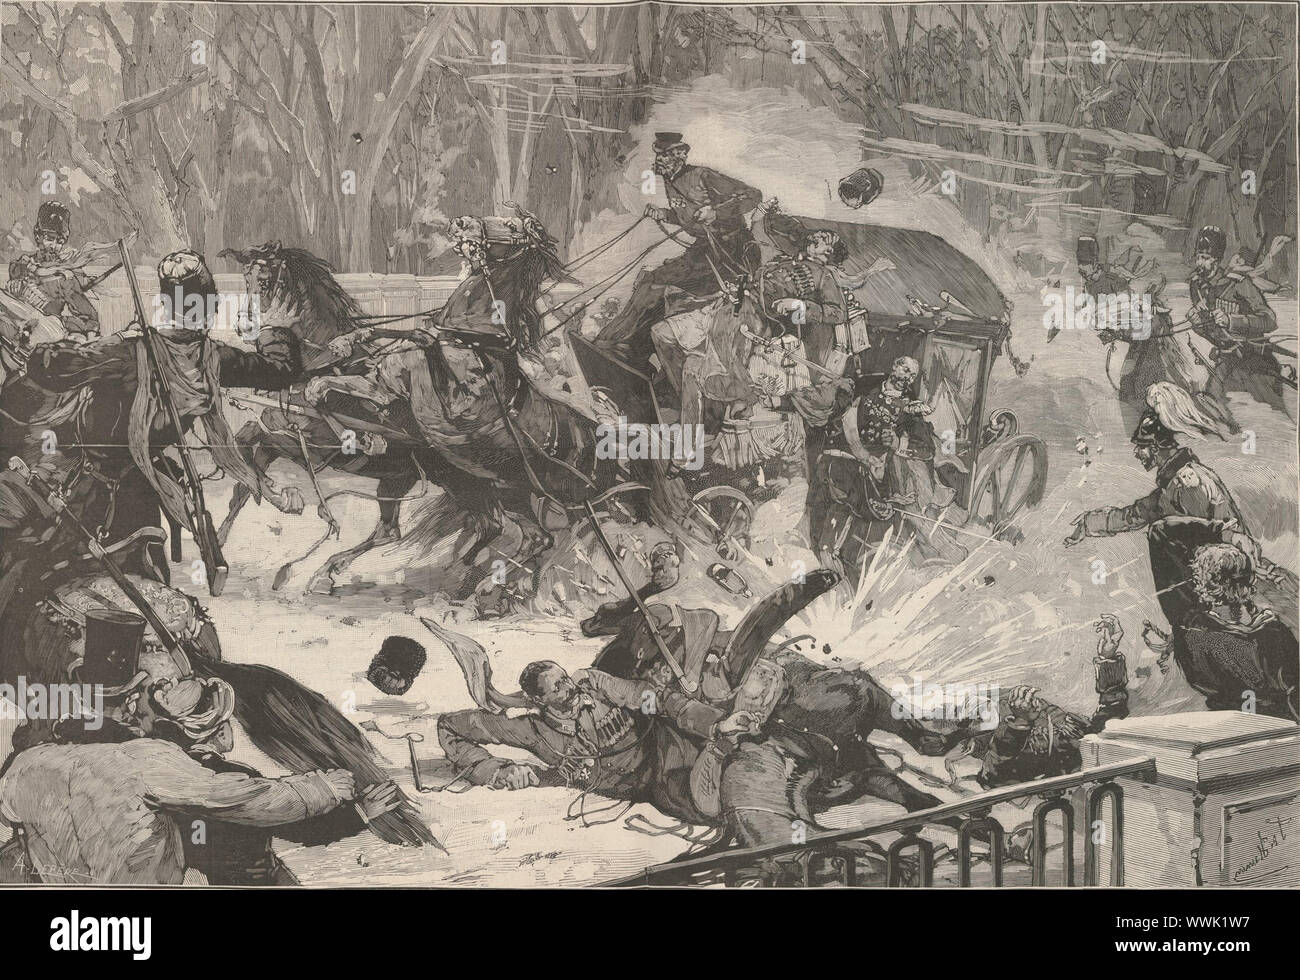 """The Assassination of Alexander II on 13 March 1881. From """"Le Monde Illustré"""", 1881. Found in the Collection of Bibliothèque Nationale de France. Stock Photo"""